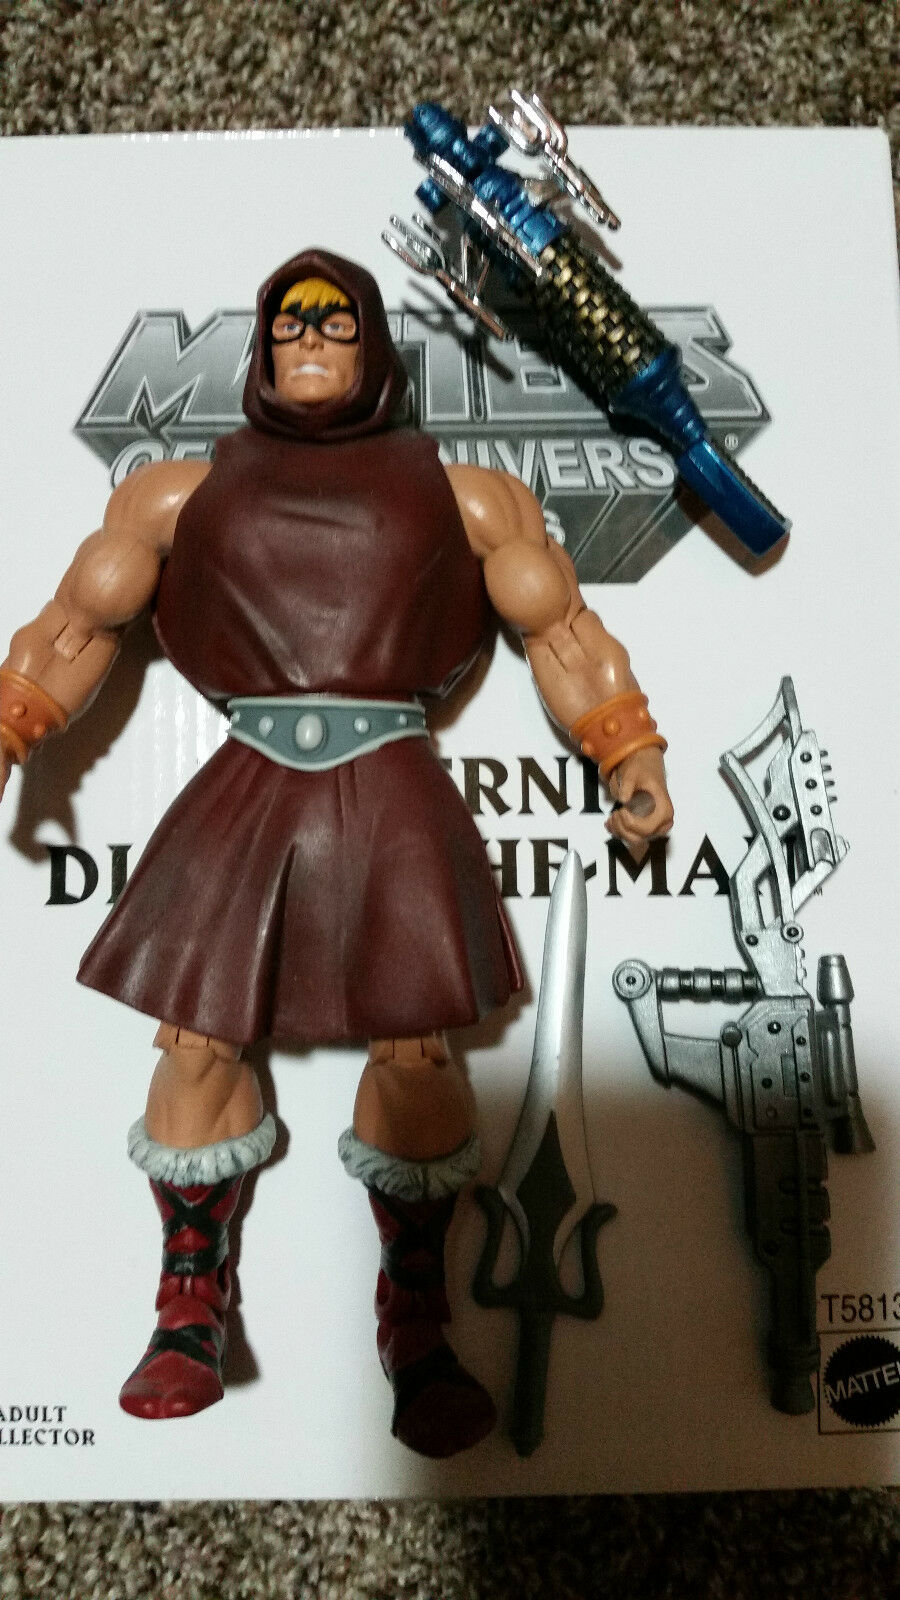 Masters of the Universe Classics Preternia Disguise He-Man Figure